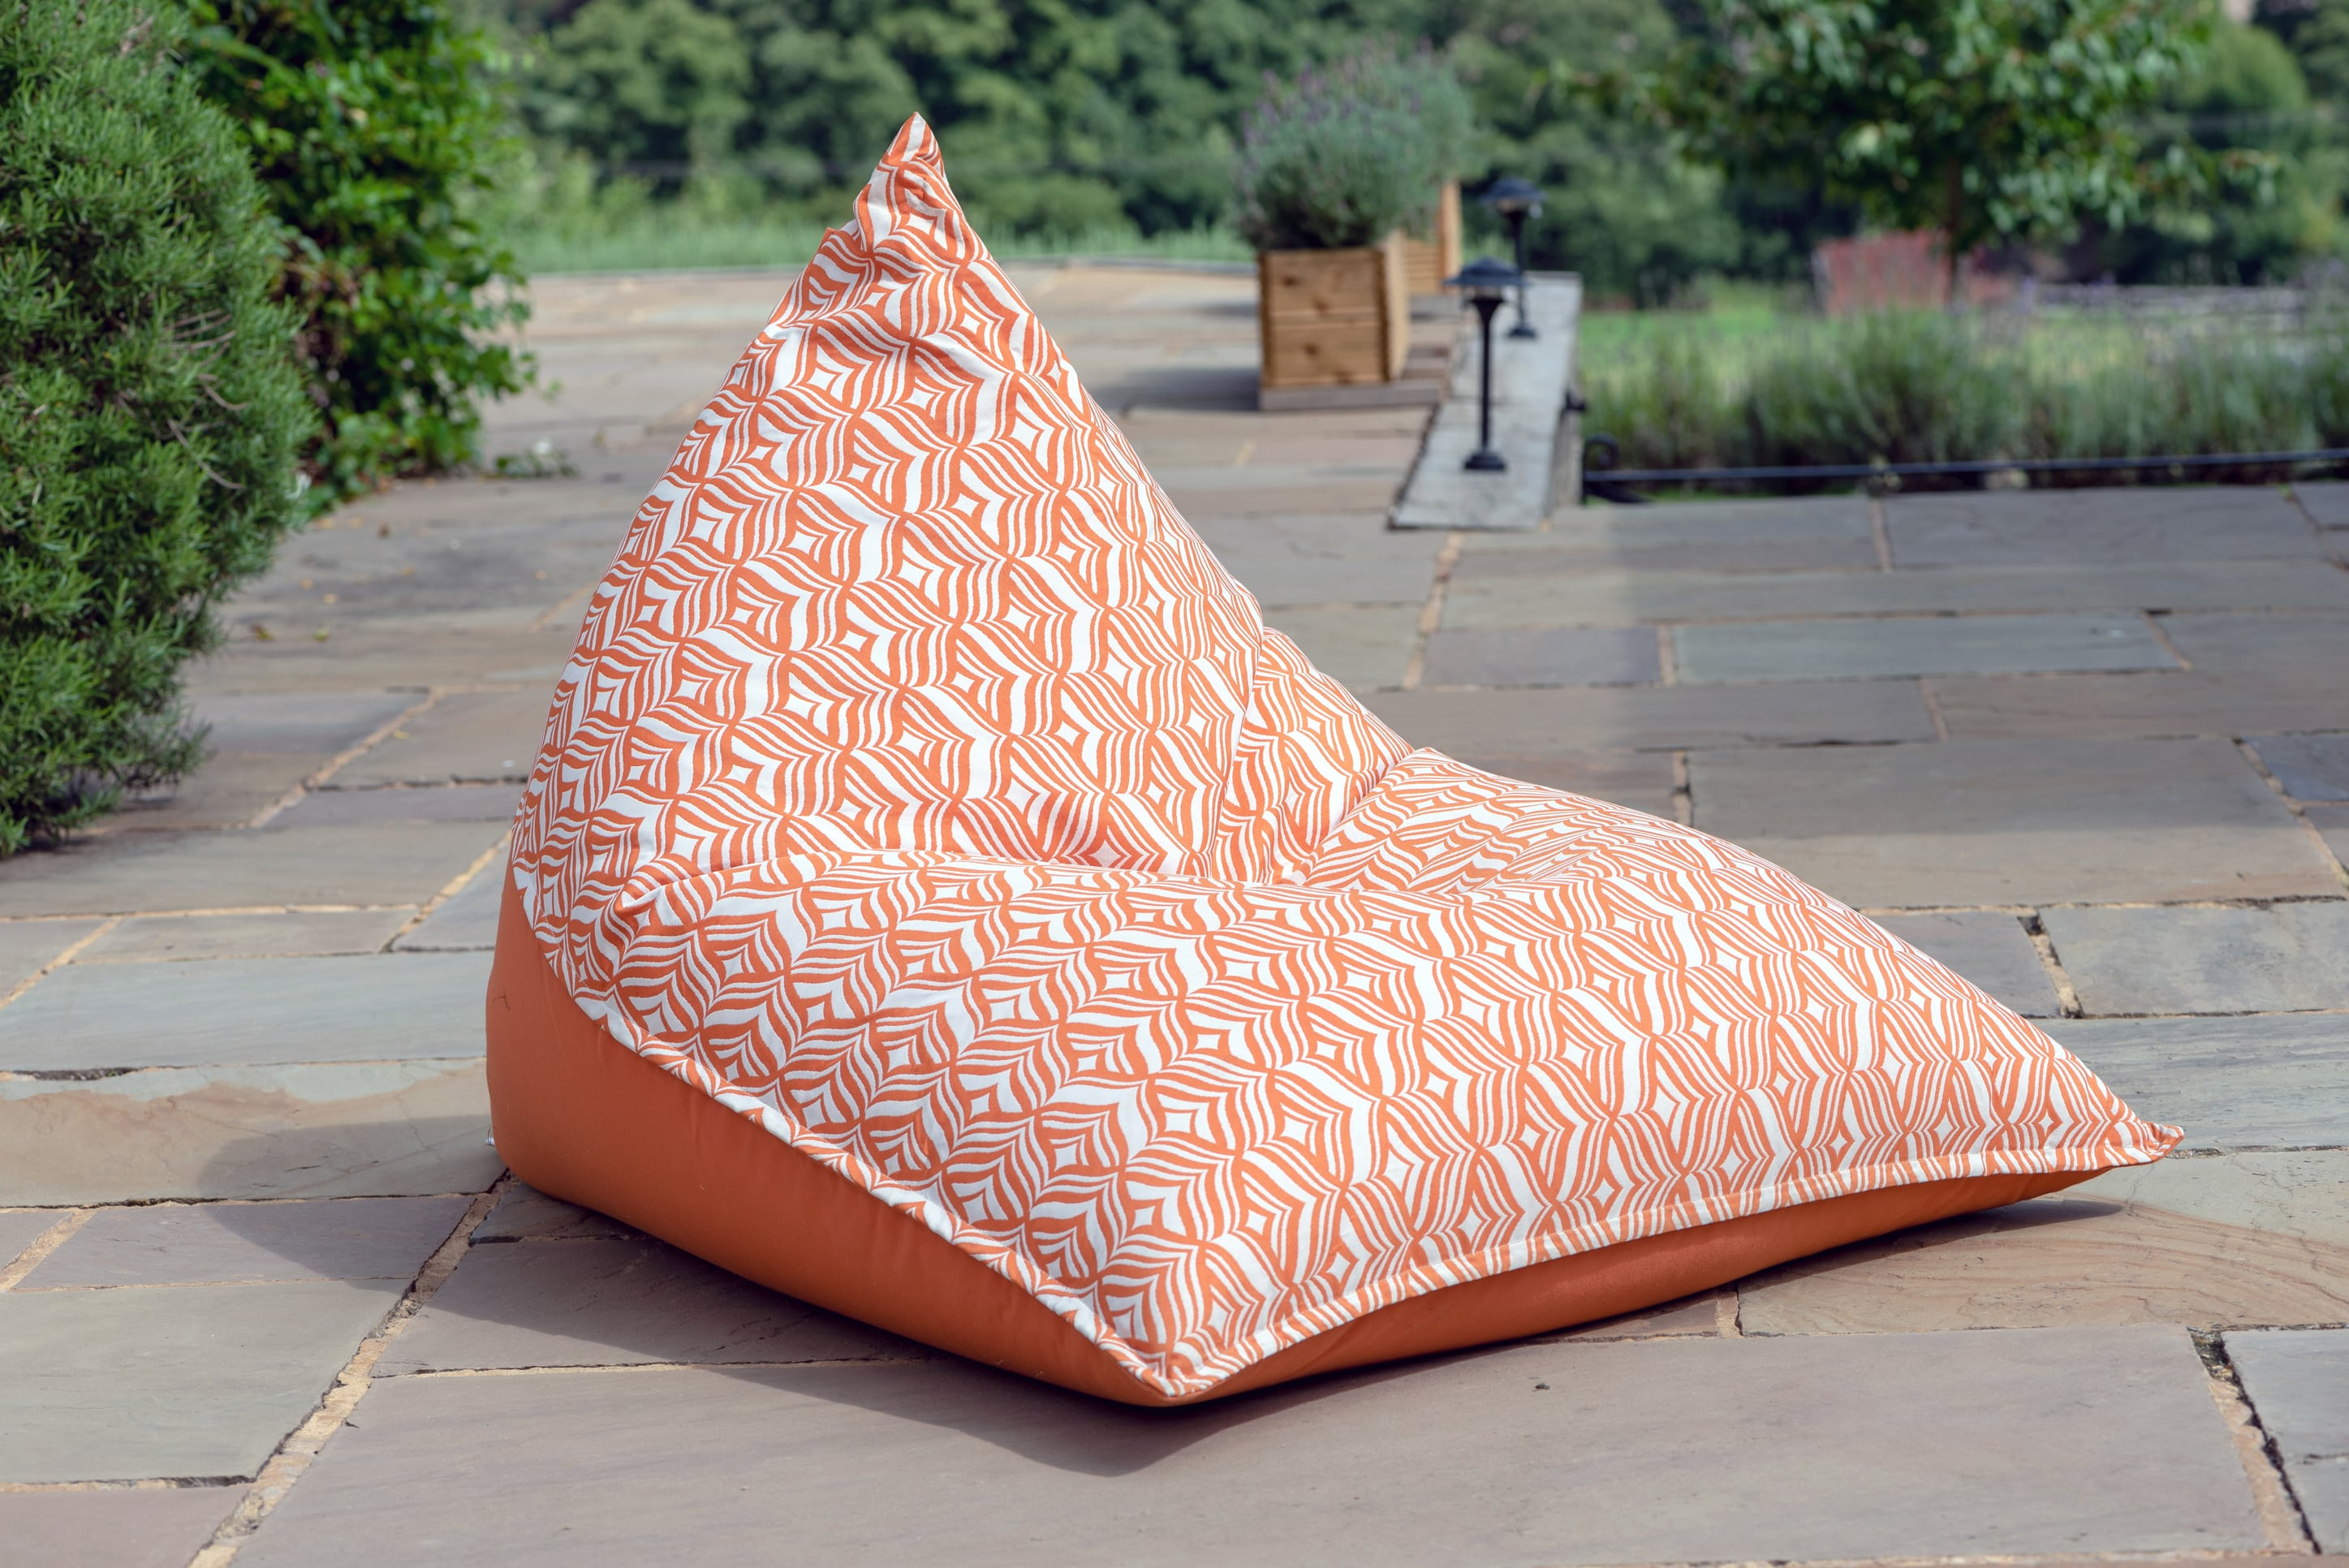 Armadillo Sun bean bag chair in orange and white tulip pattern